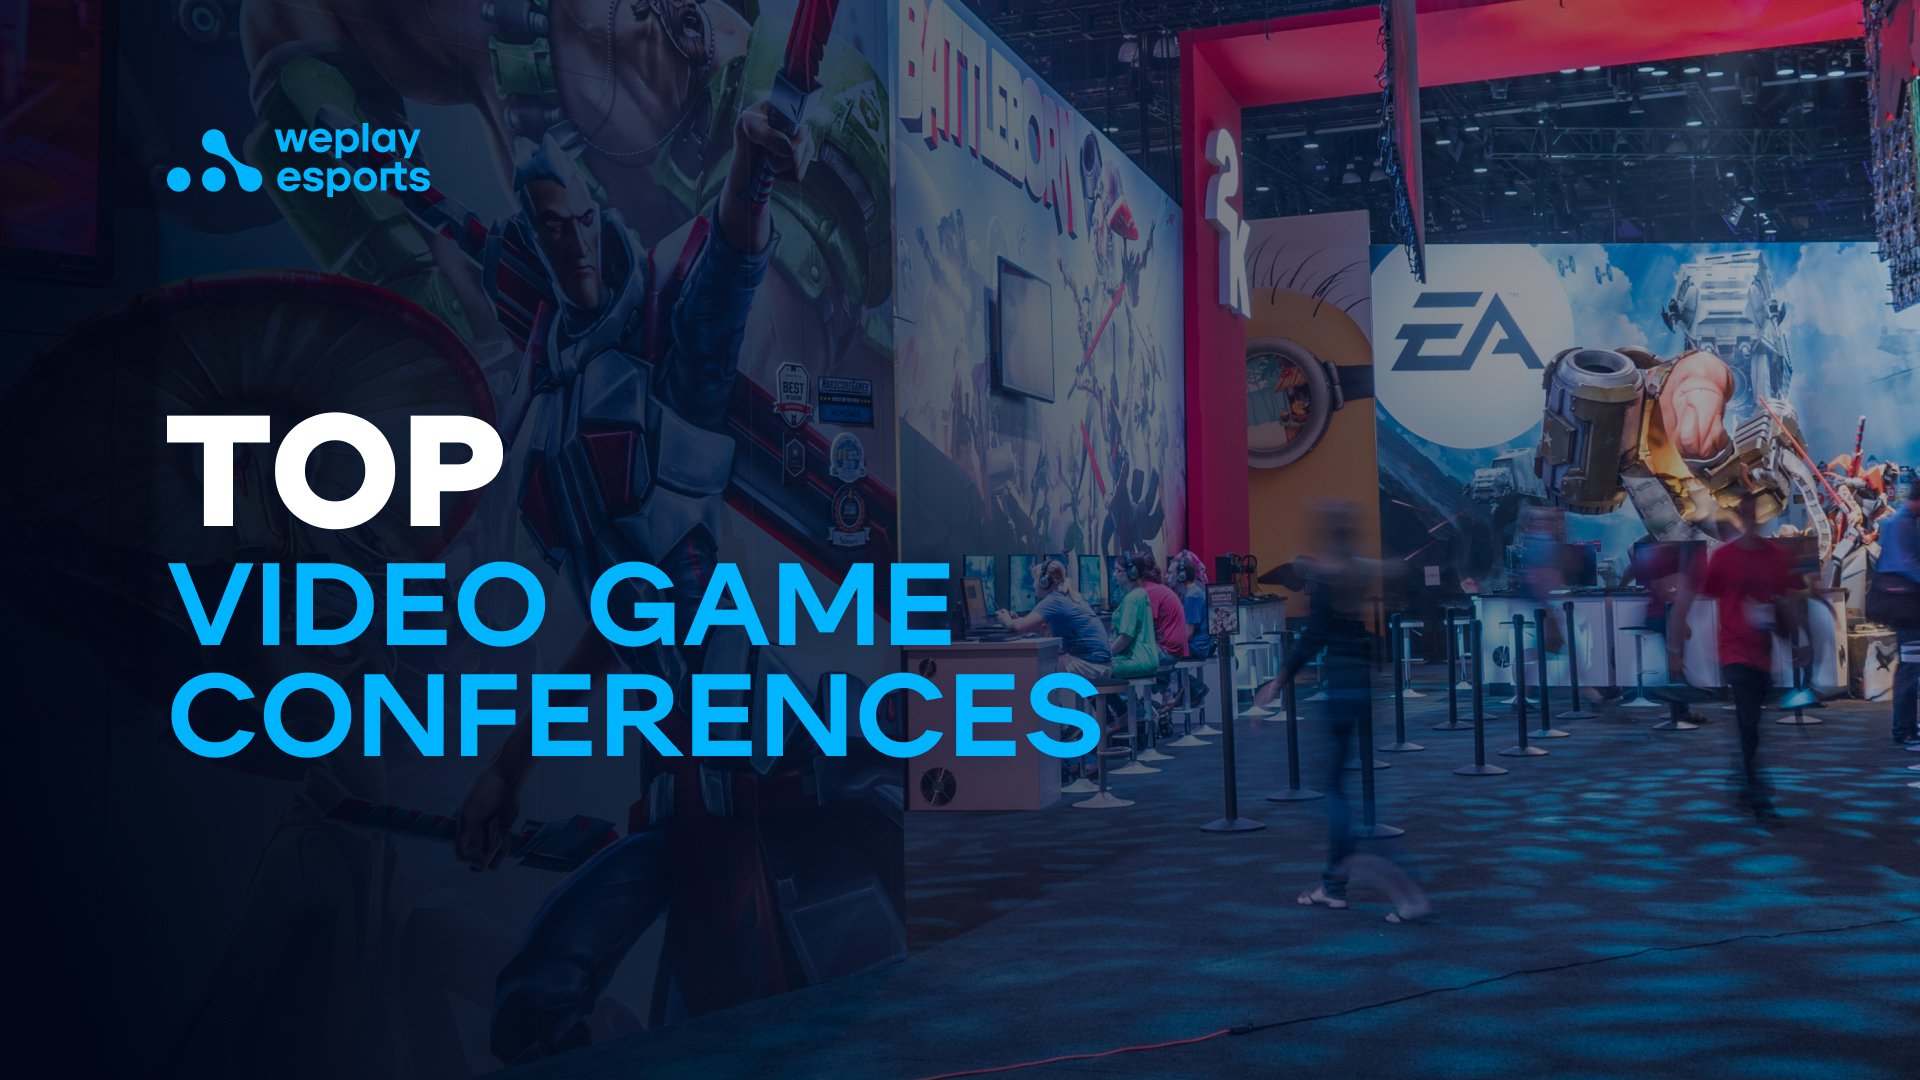 Top Video Game Conferences